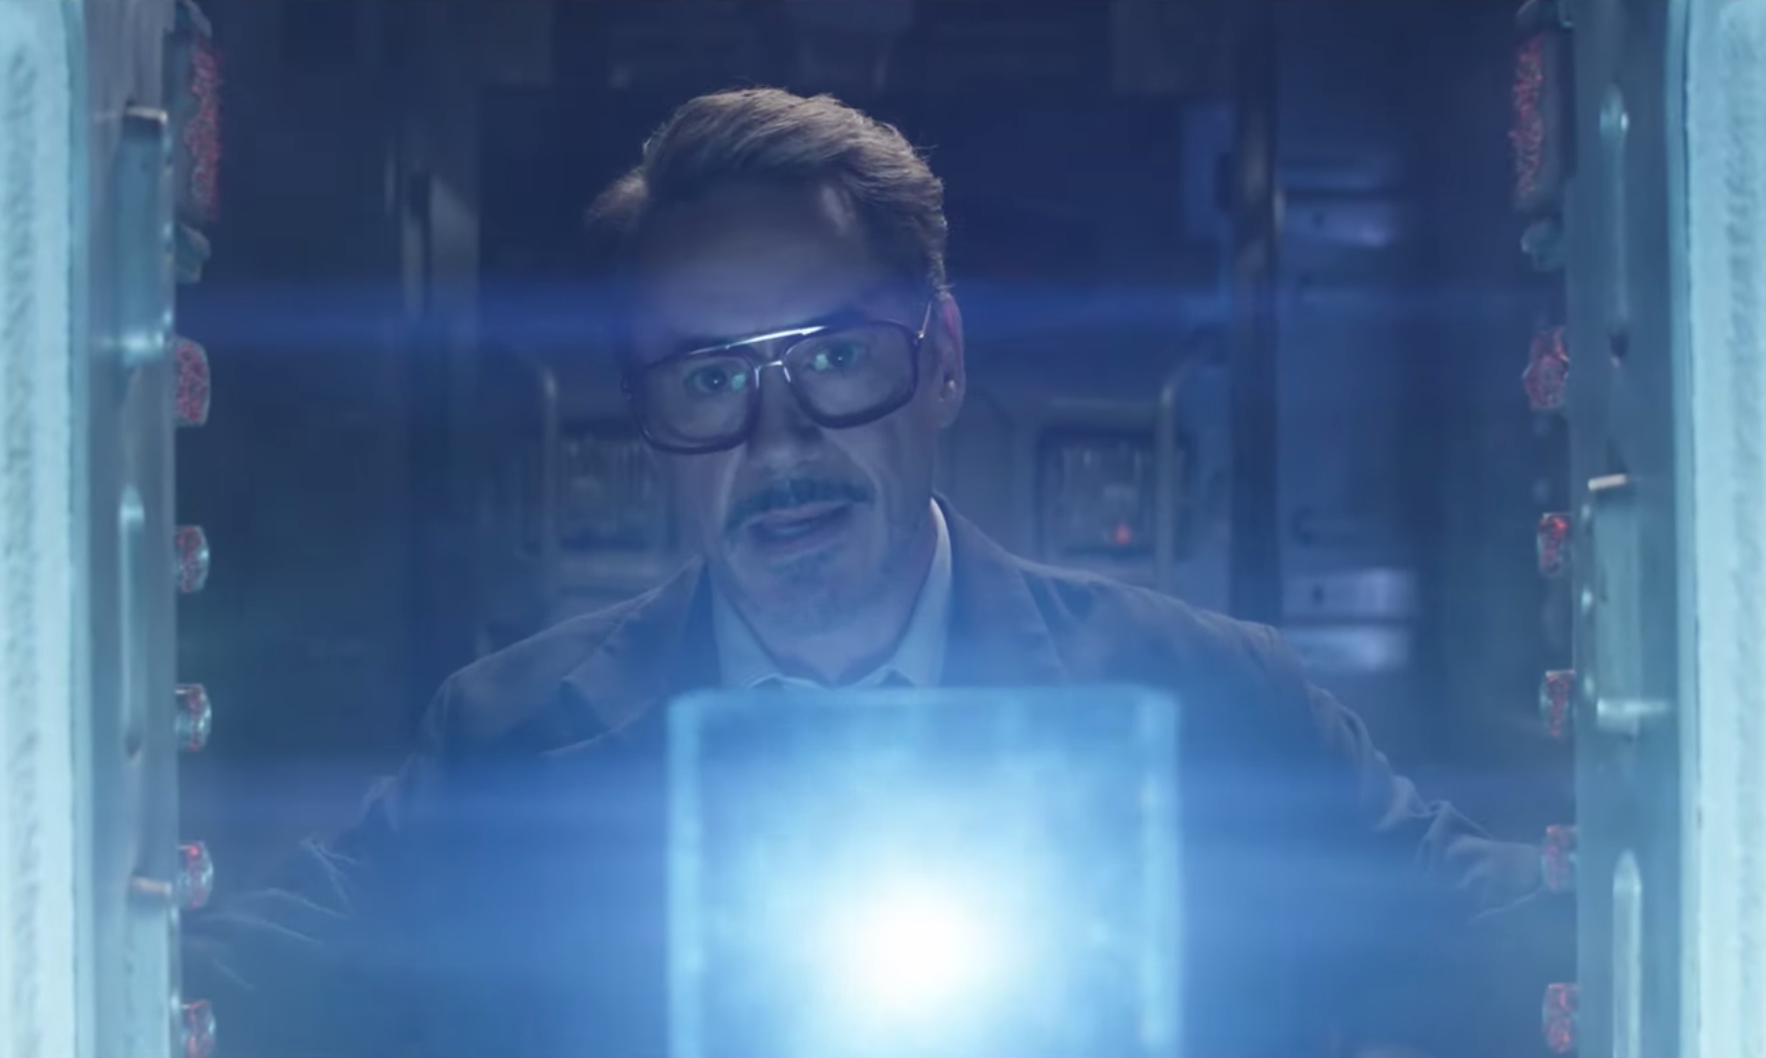 Avengers Fans Found a New Captain America Easter Egg That Everyone Missed in Endgame